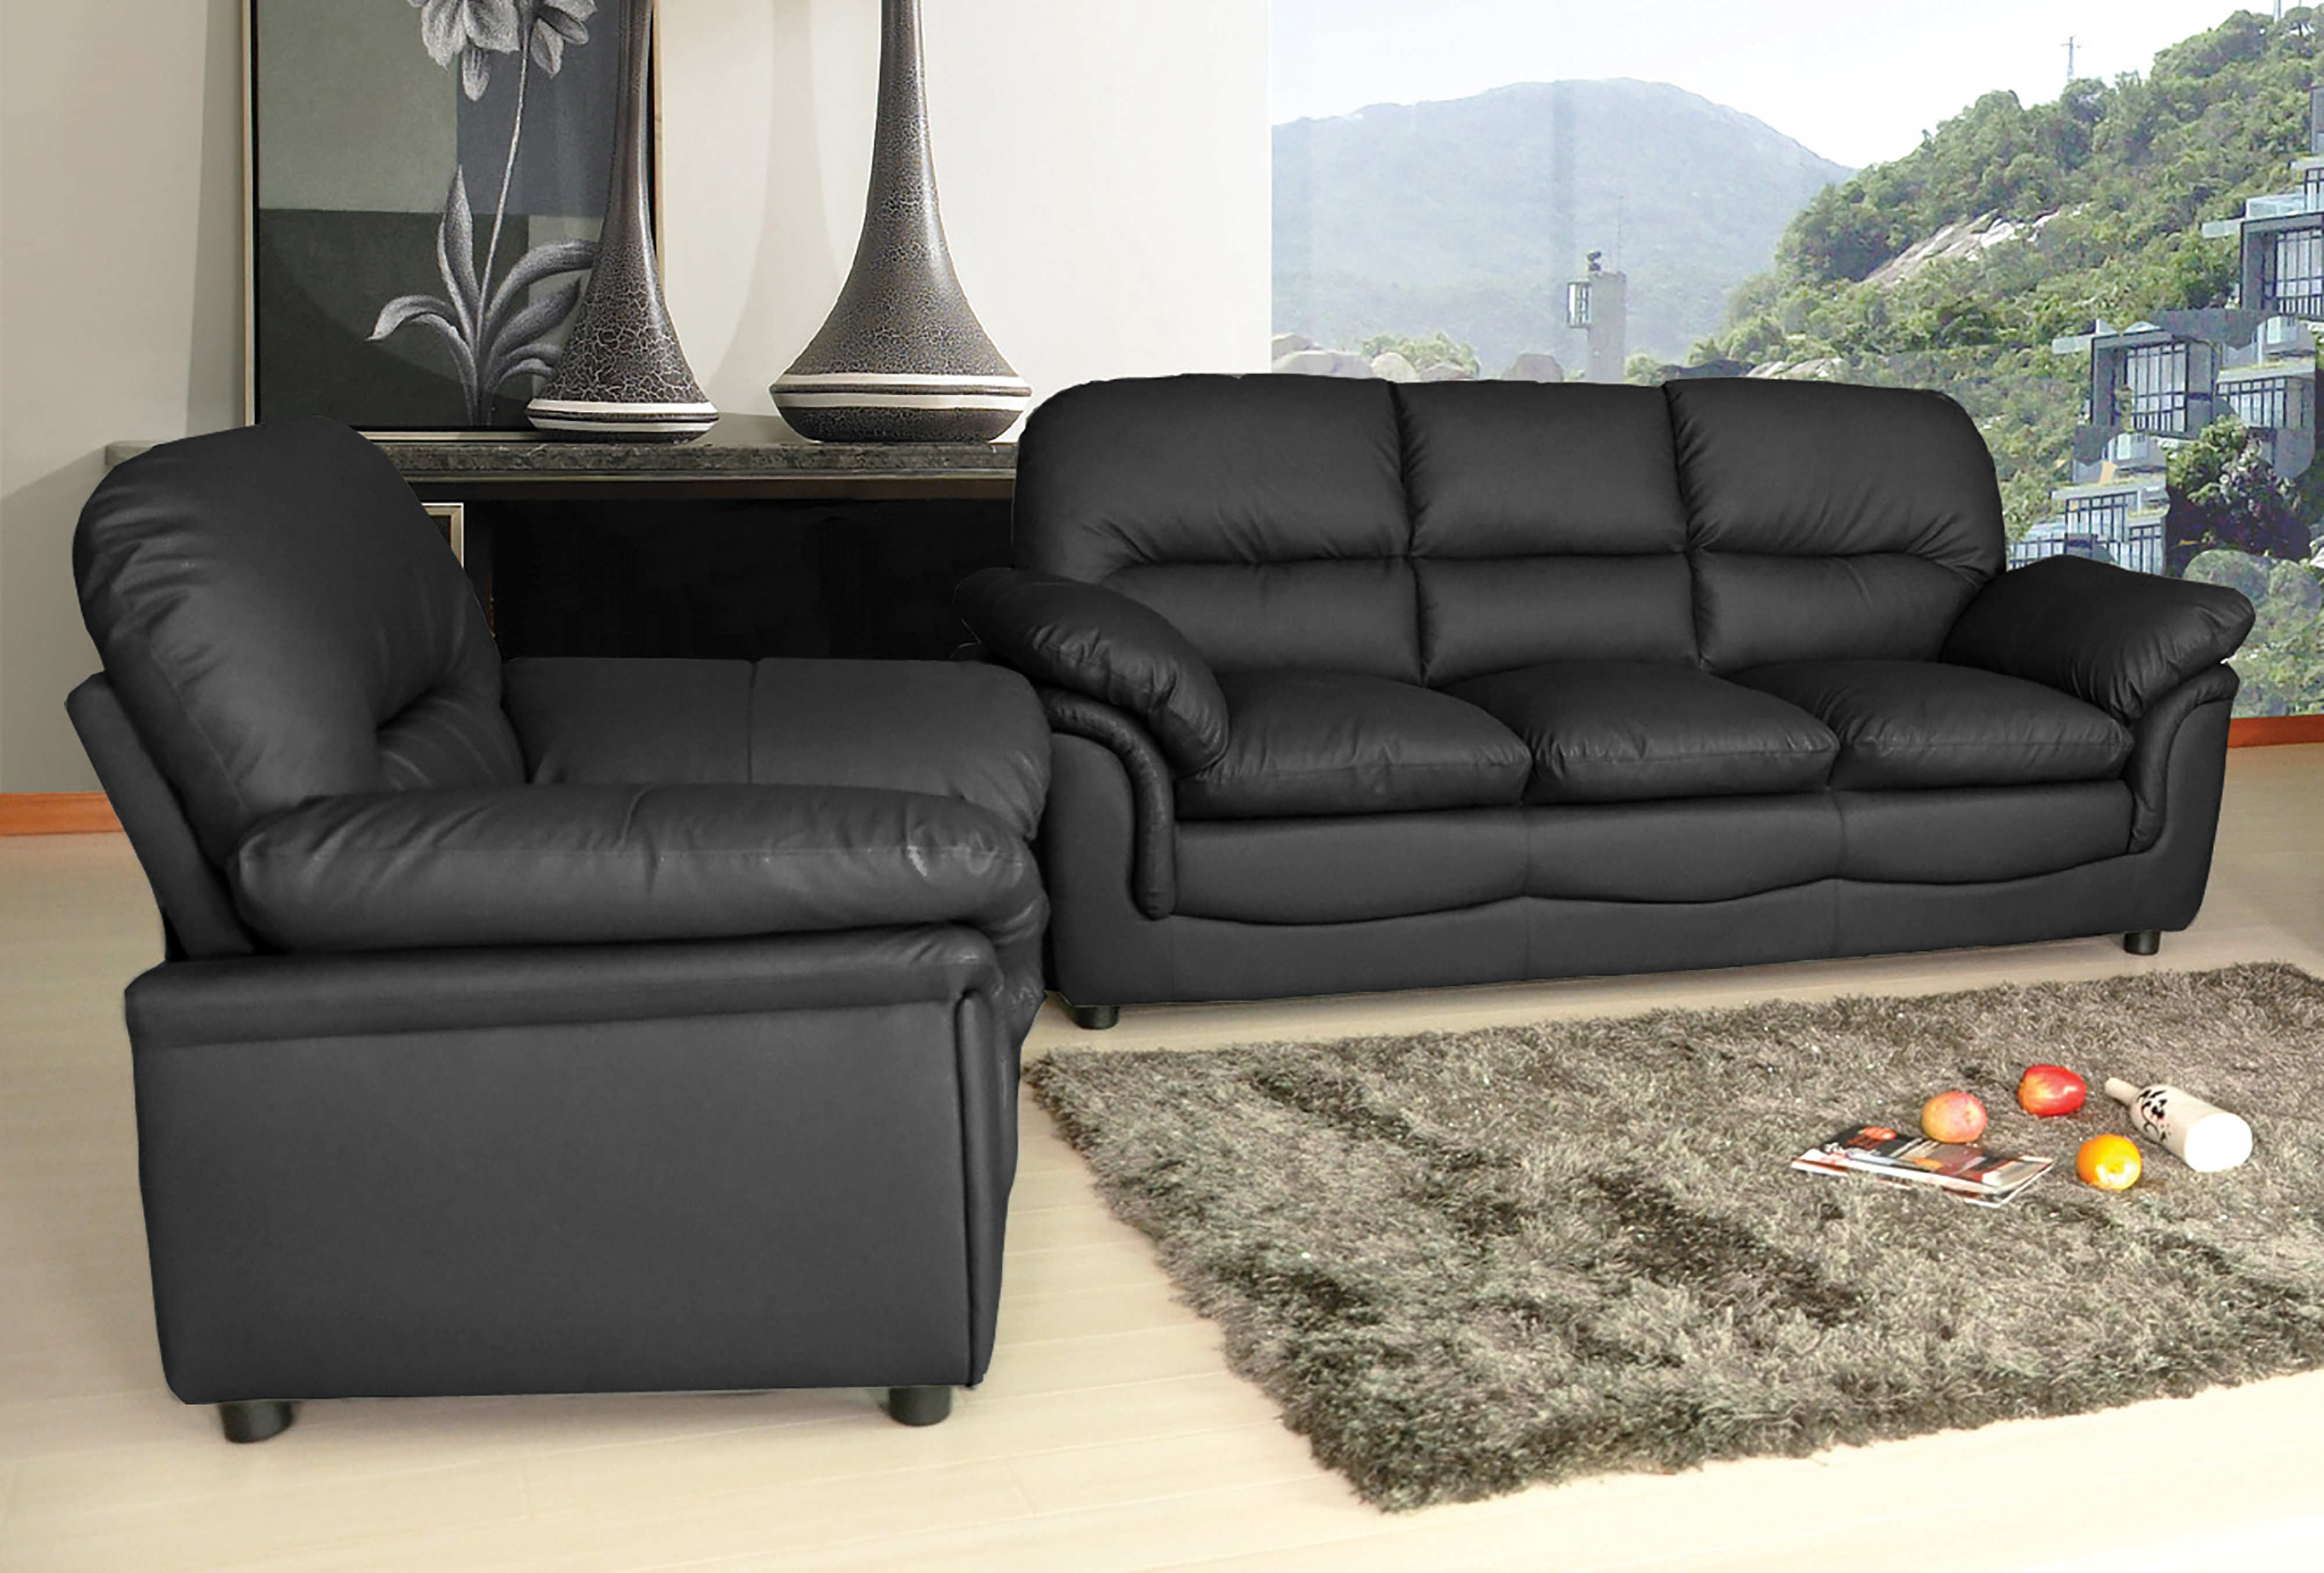 new modern verona bonded leather sofa suite in black brown cream